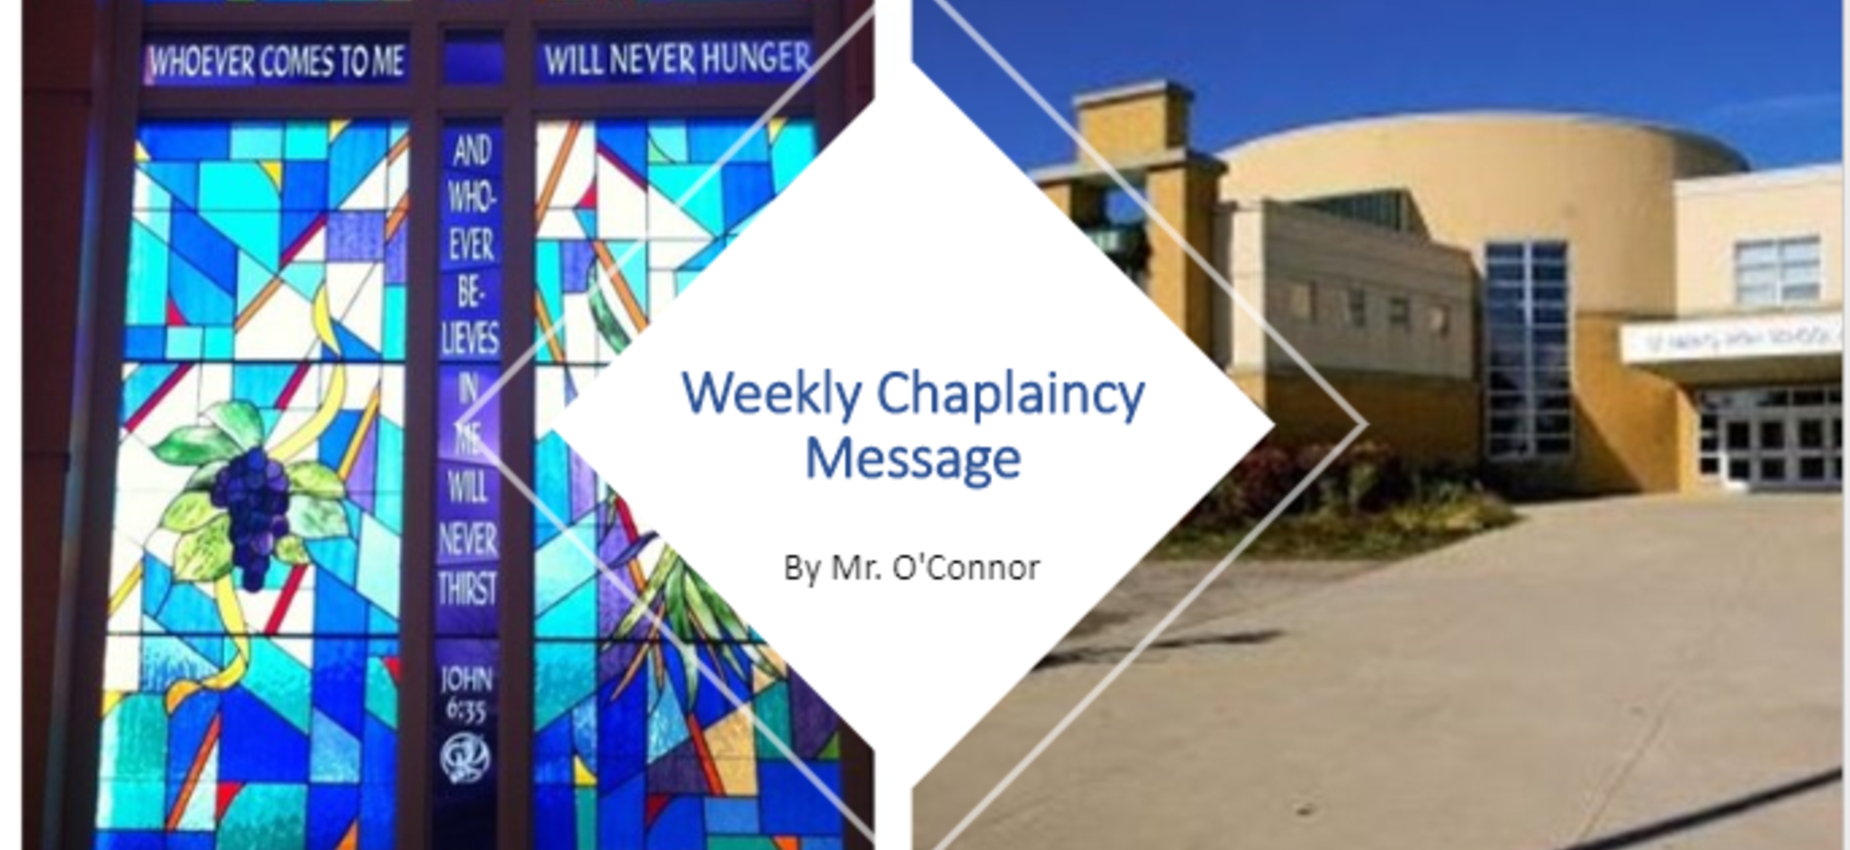 Weekly Chaplaincy Message